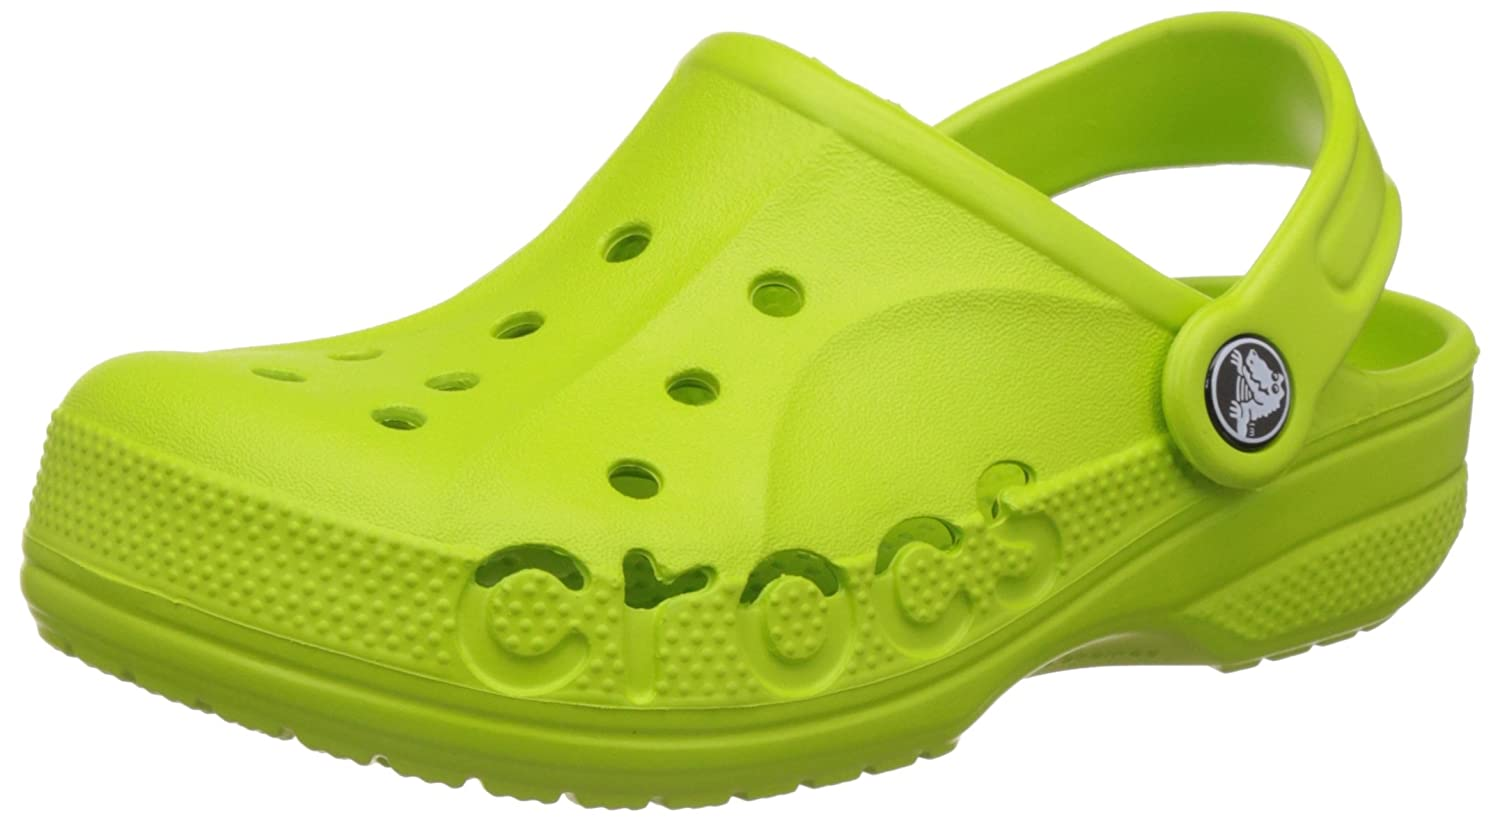 ba43f596b8fe8 crocs Kids Unisex Baya Vibrant Violet Clogs and Mules  Buy Online at Low  Prices in India - Amazon.in